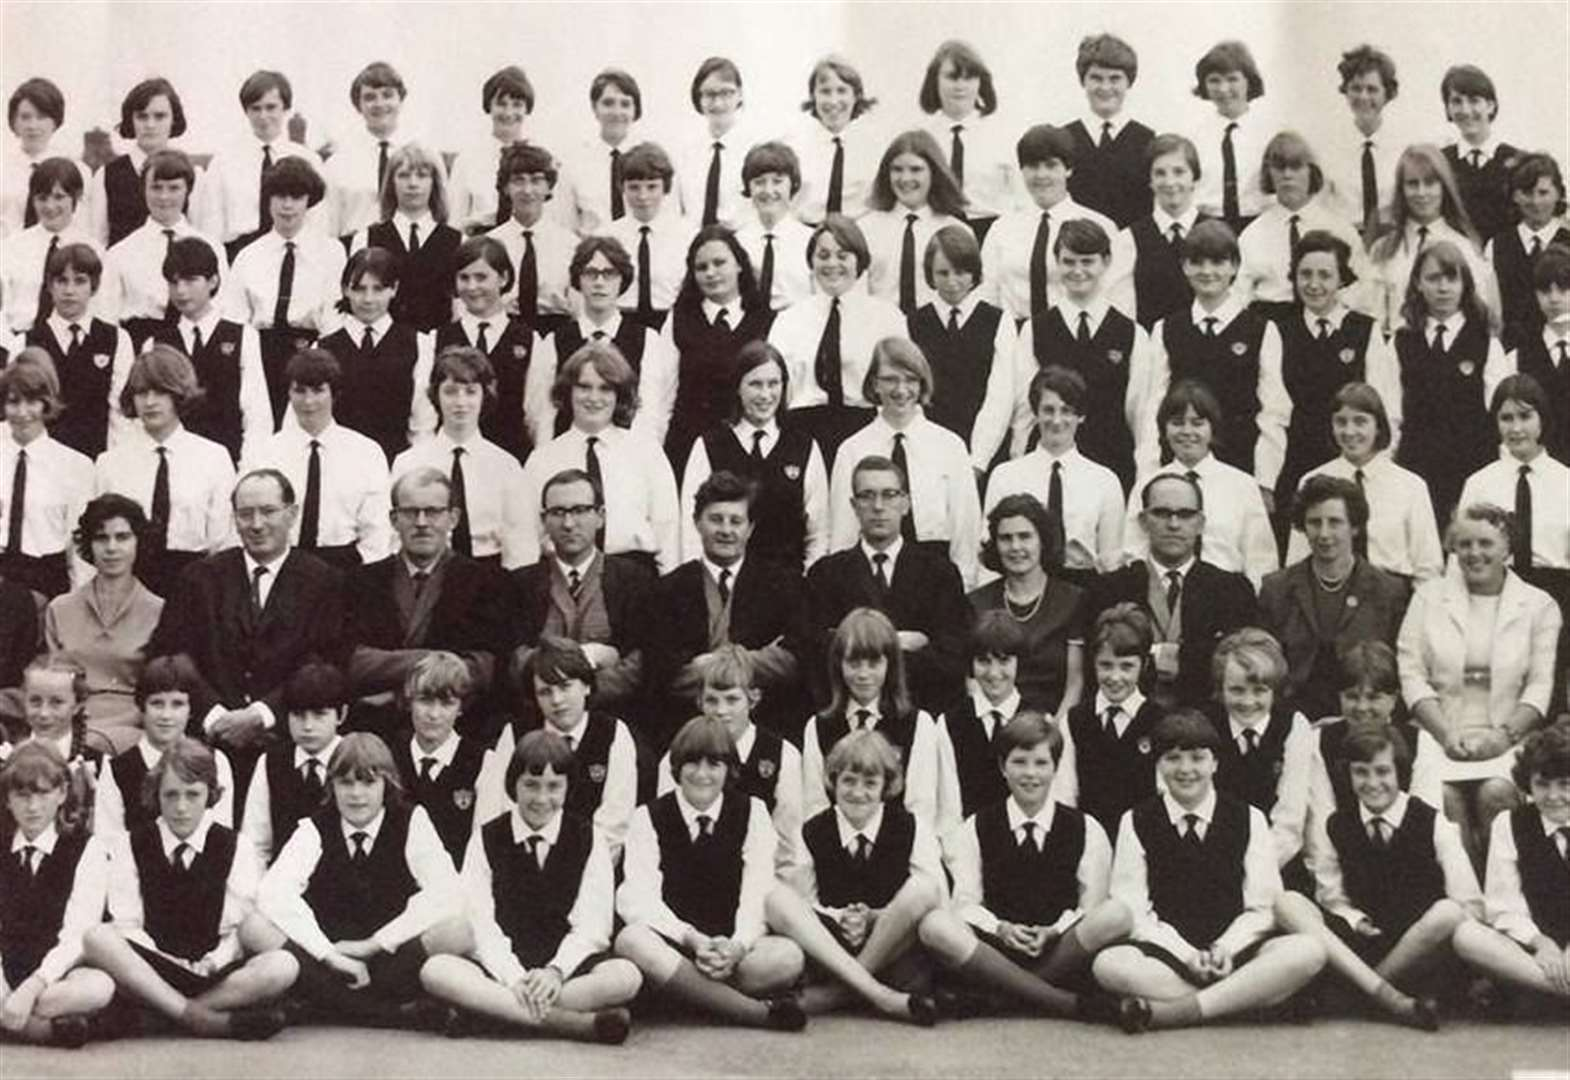 Reunion planned for school's 'Class of 1963'